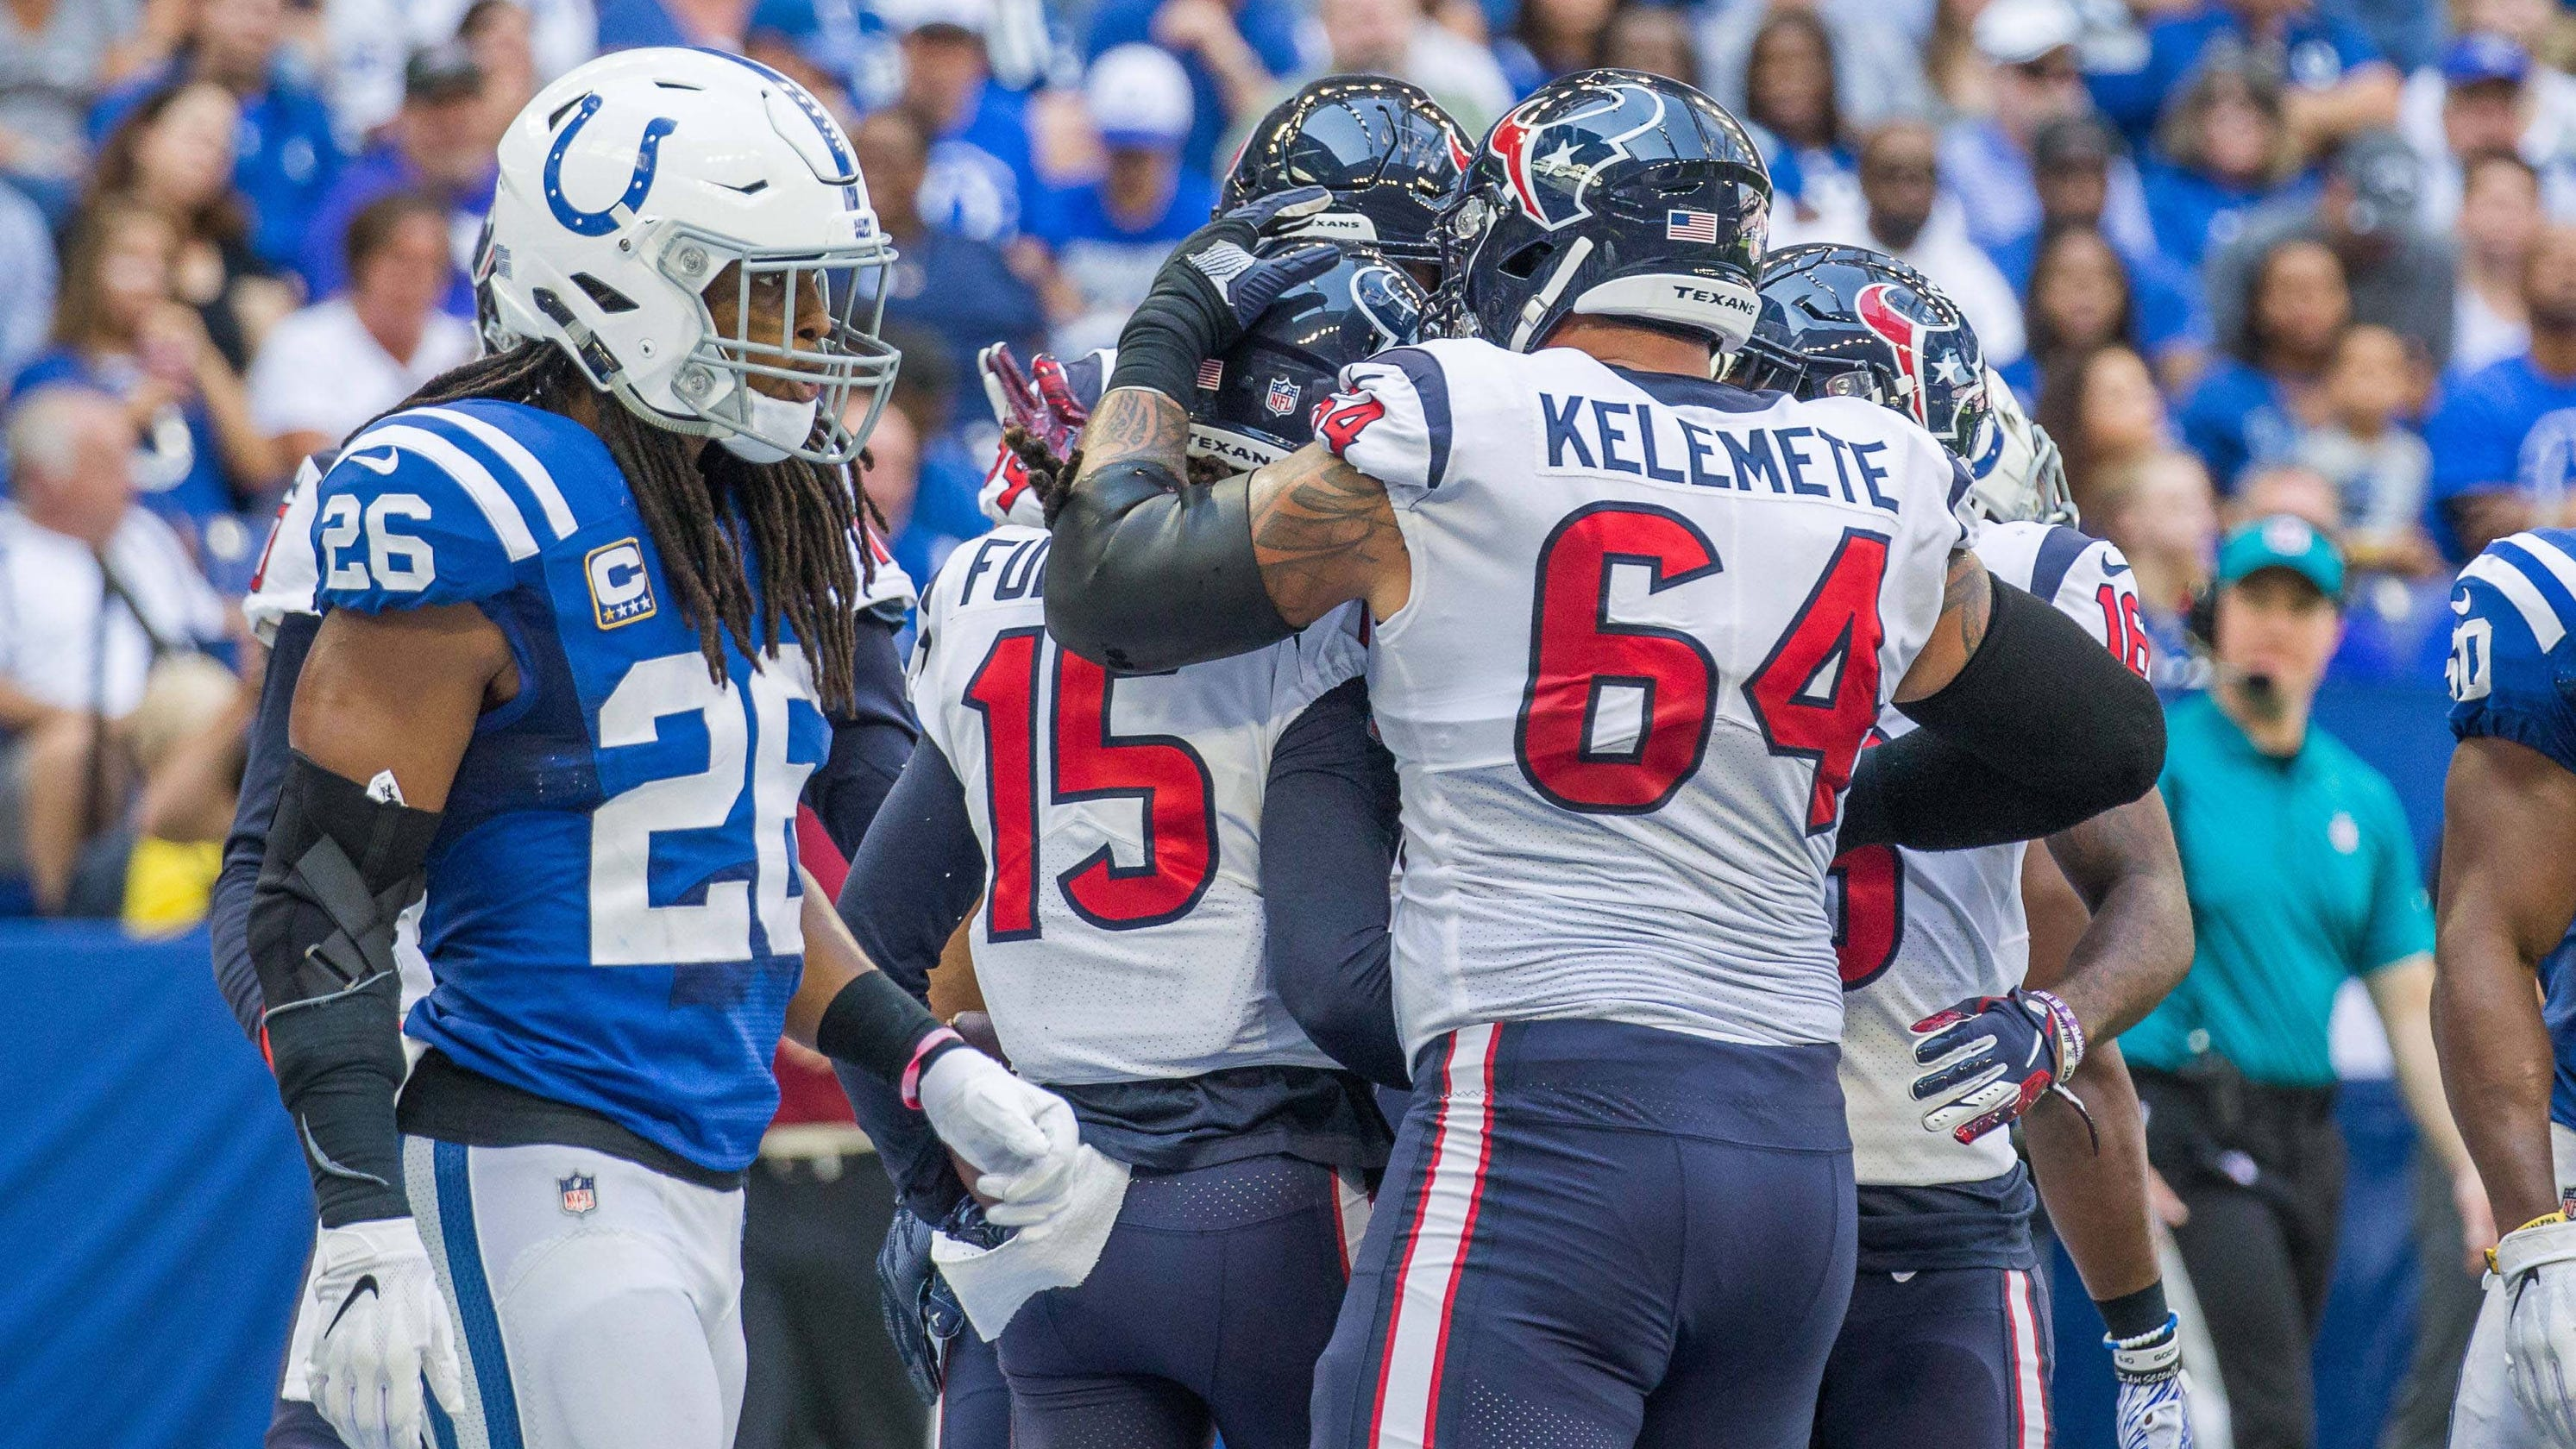 Indianapolis Colts  Frank Reich s decision backfires in loss to Texans 0b2d75dcf